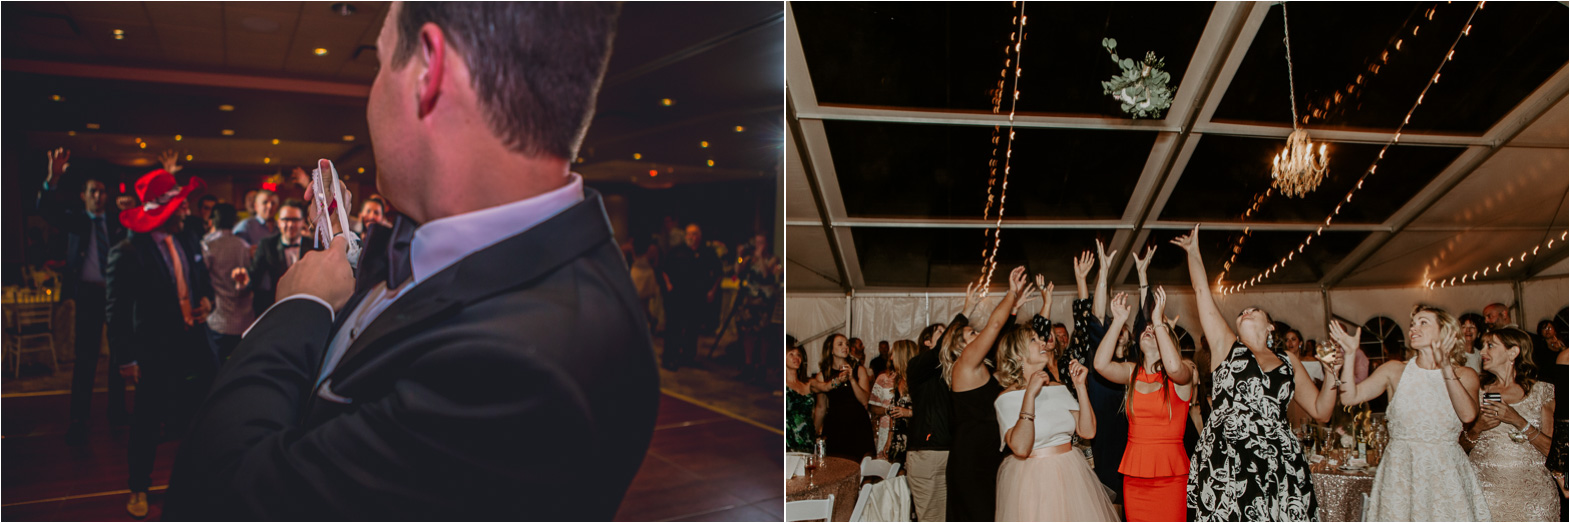 Wedding tradition of garter toss and bouquet toss